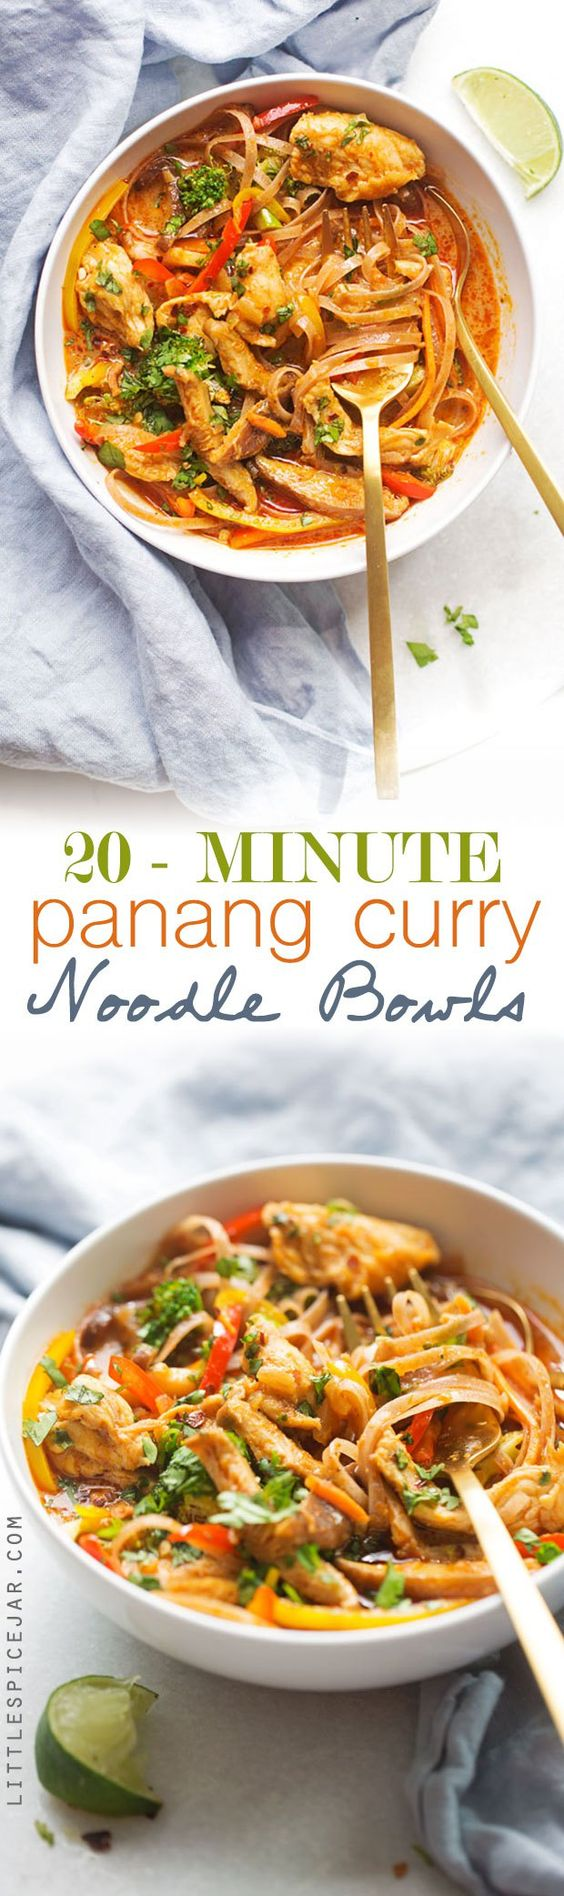 20 Minute Panang Curry Noodle Bowls - A quick, easy, and healthyish recipe for…